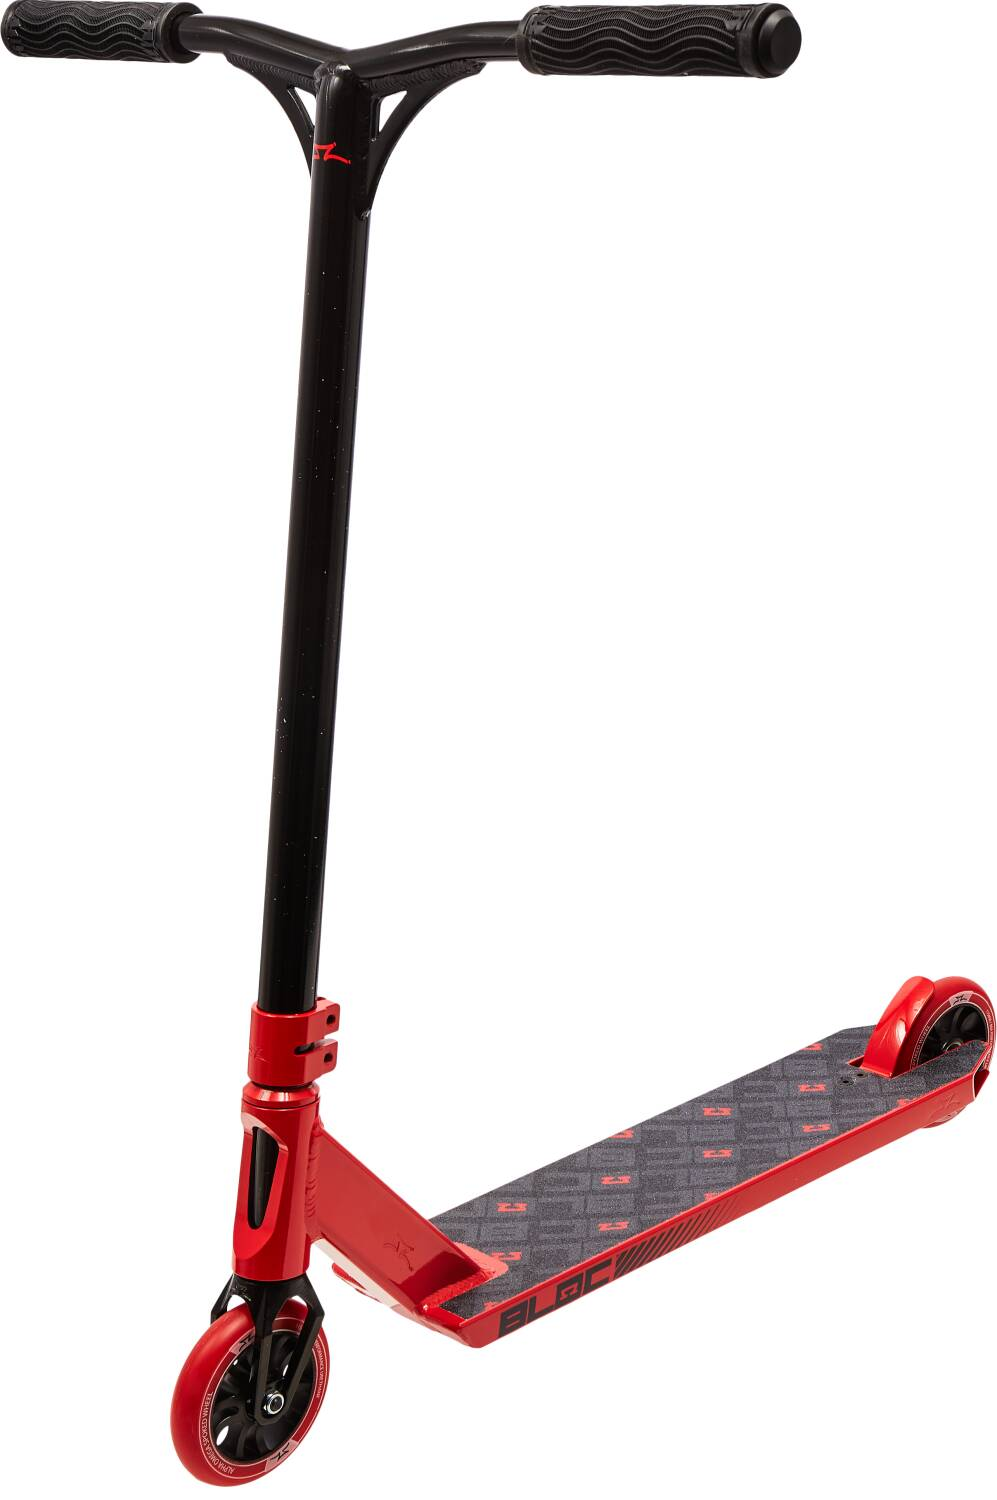 AO Bloc Scooter - Red